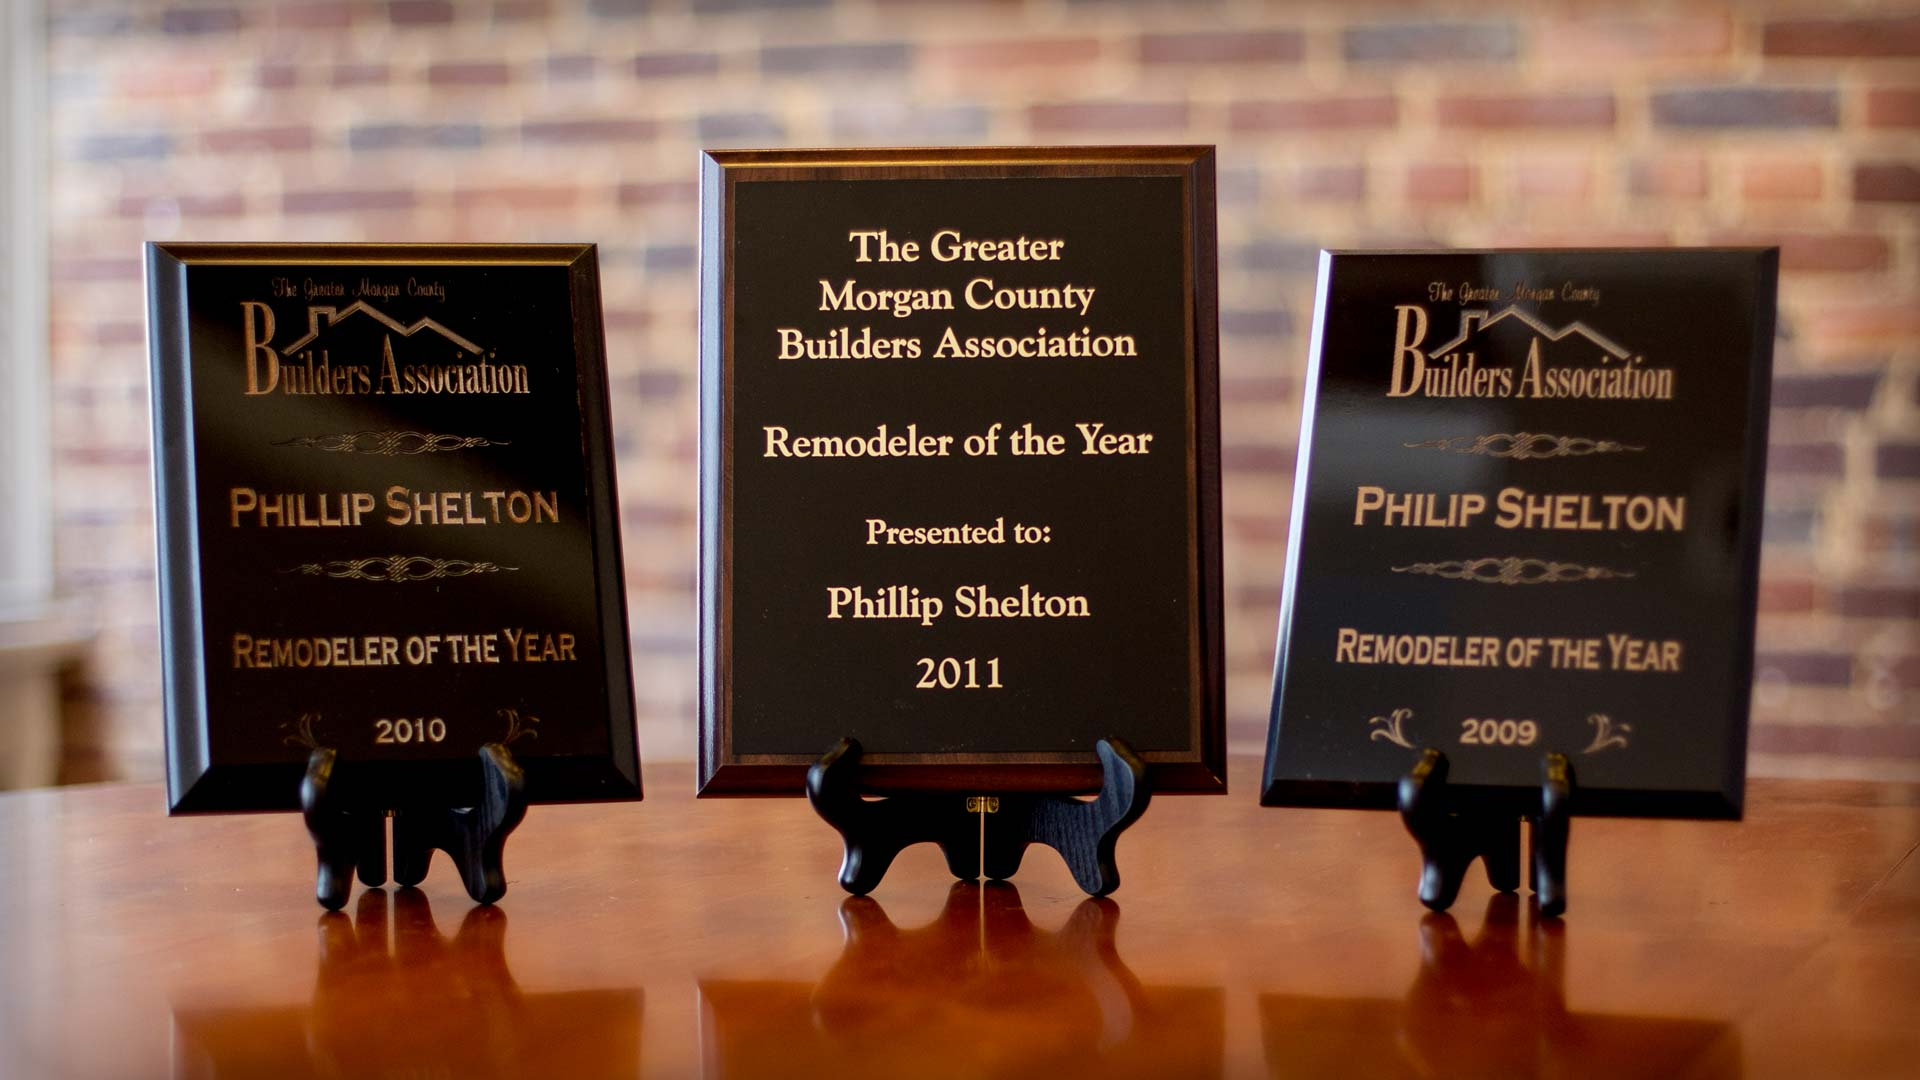 Shelton 2011 Remodeler of the Year Award